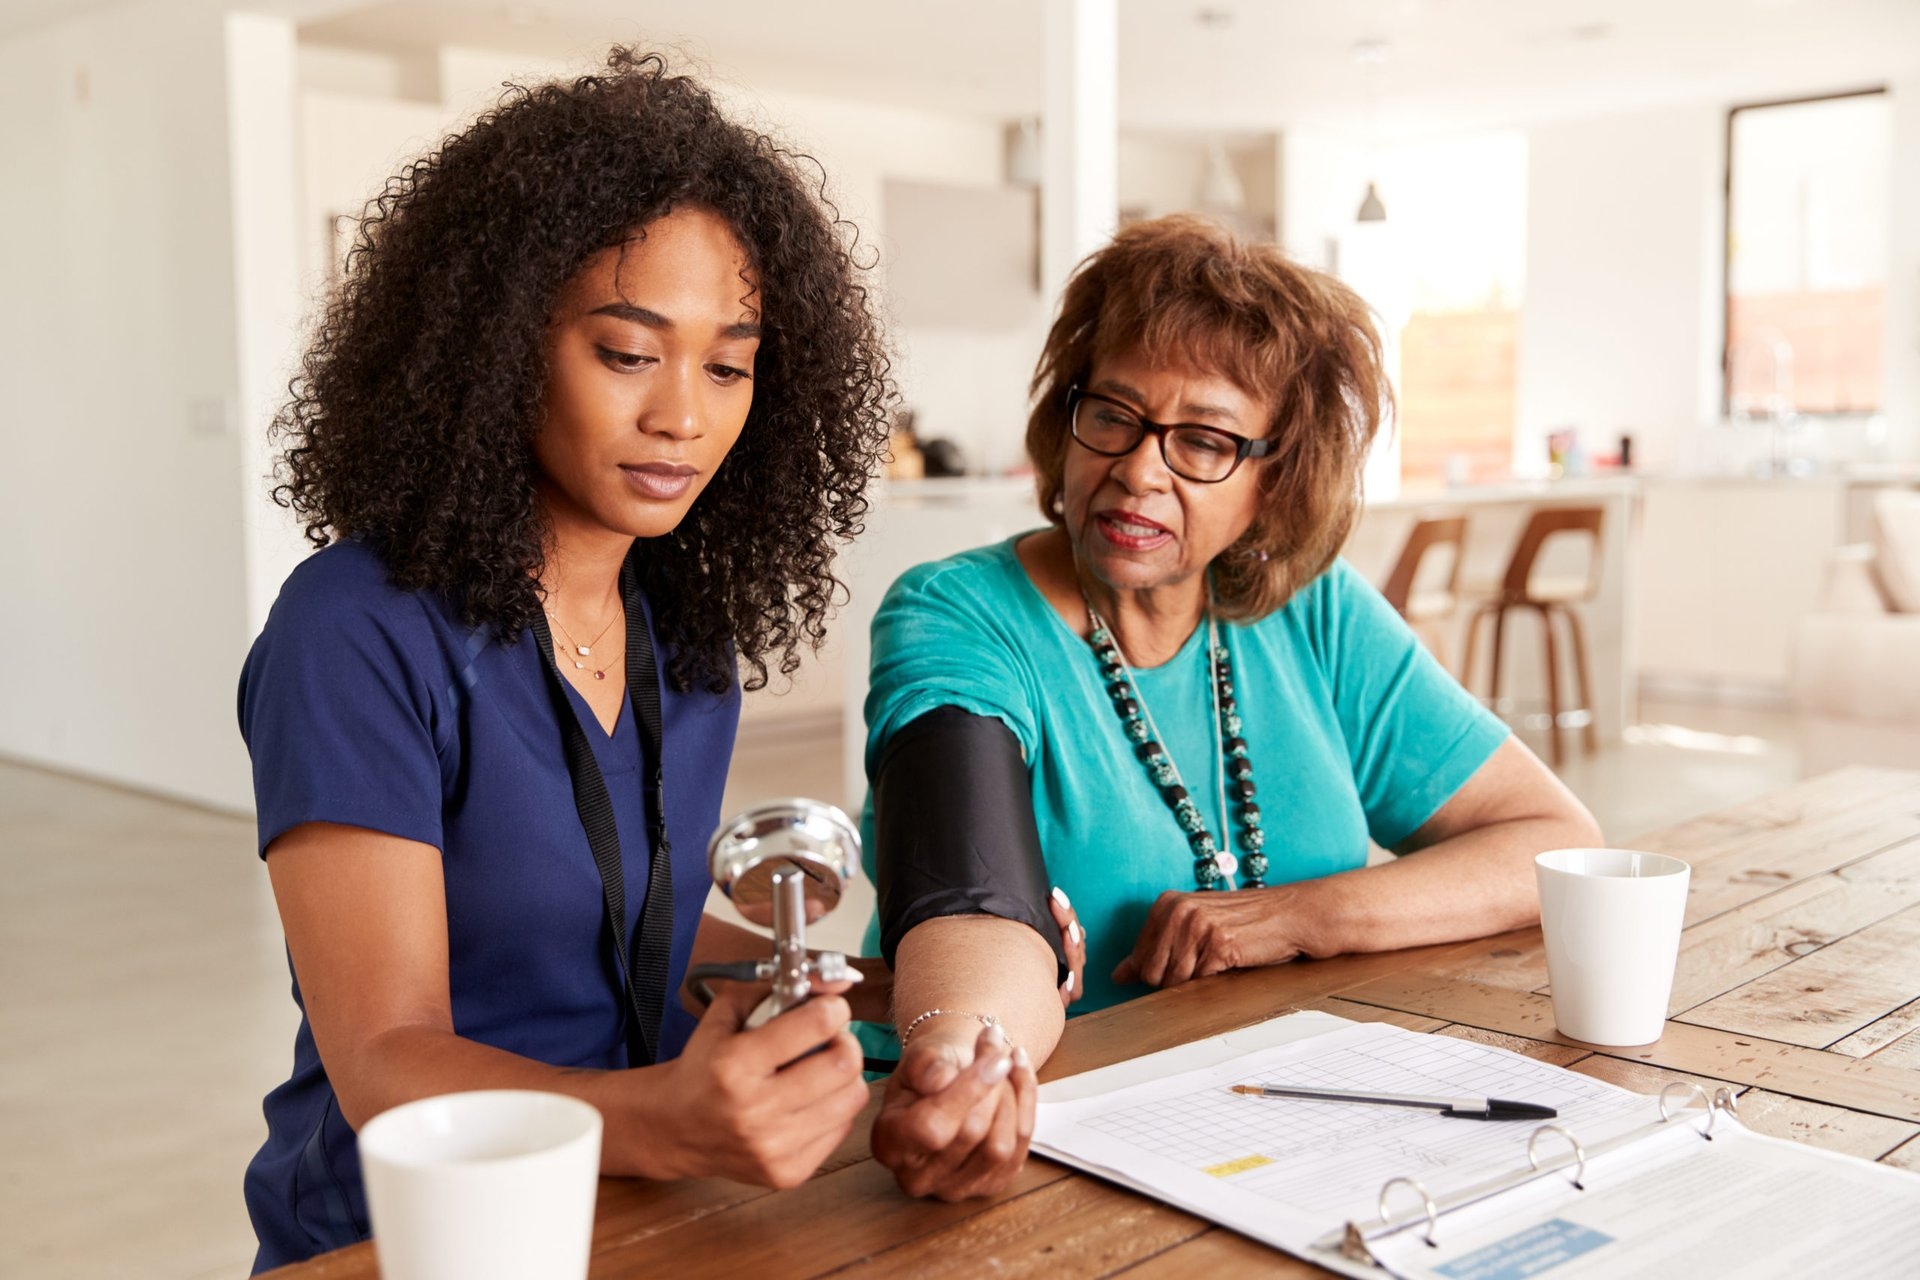 Home health aide taking a patient's blood pressure